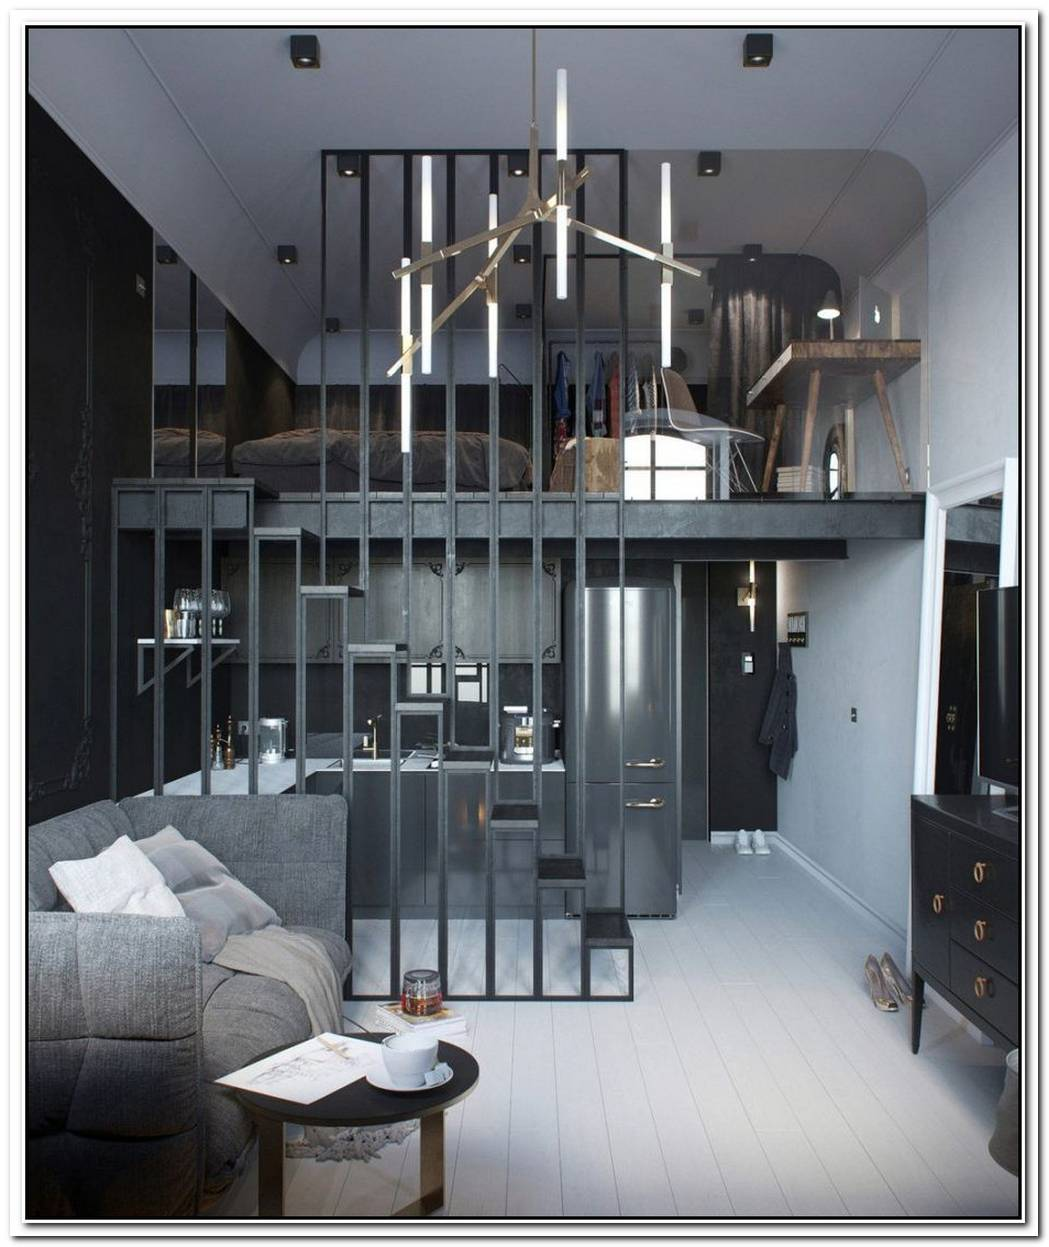 48 Square Meter Apartment With A Bright And Functional Interior D%C3%A9cor